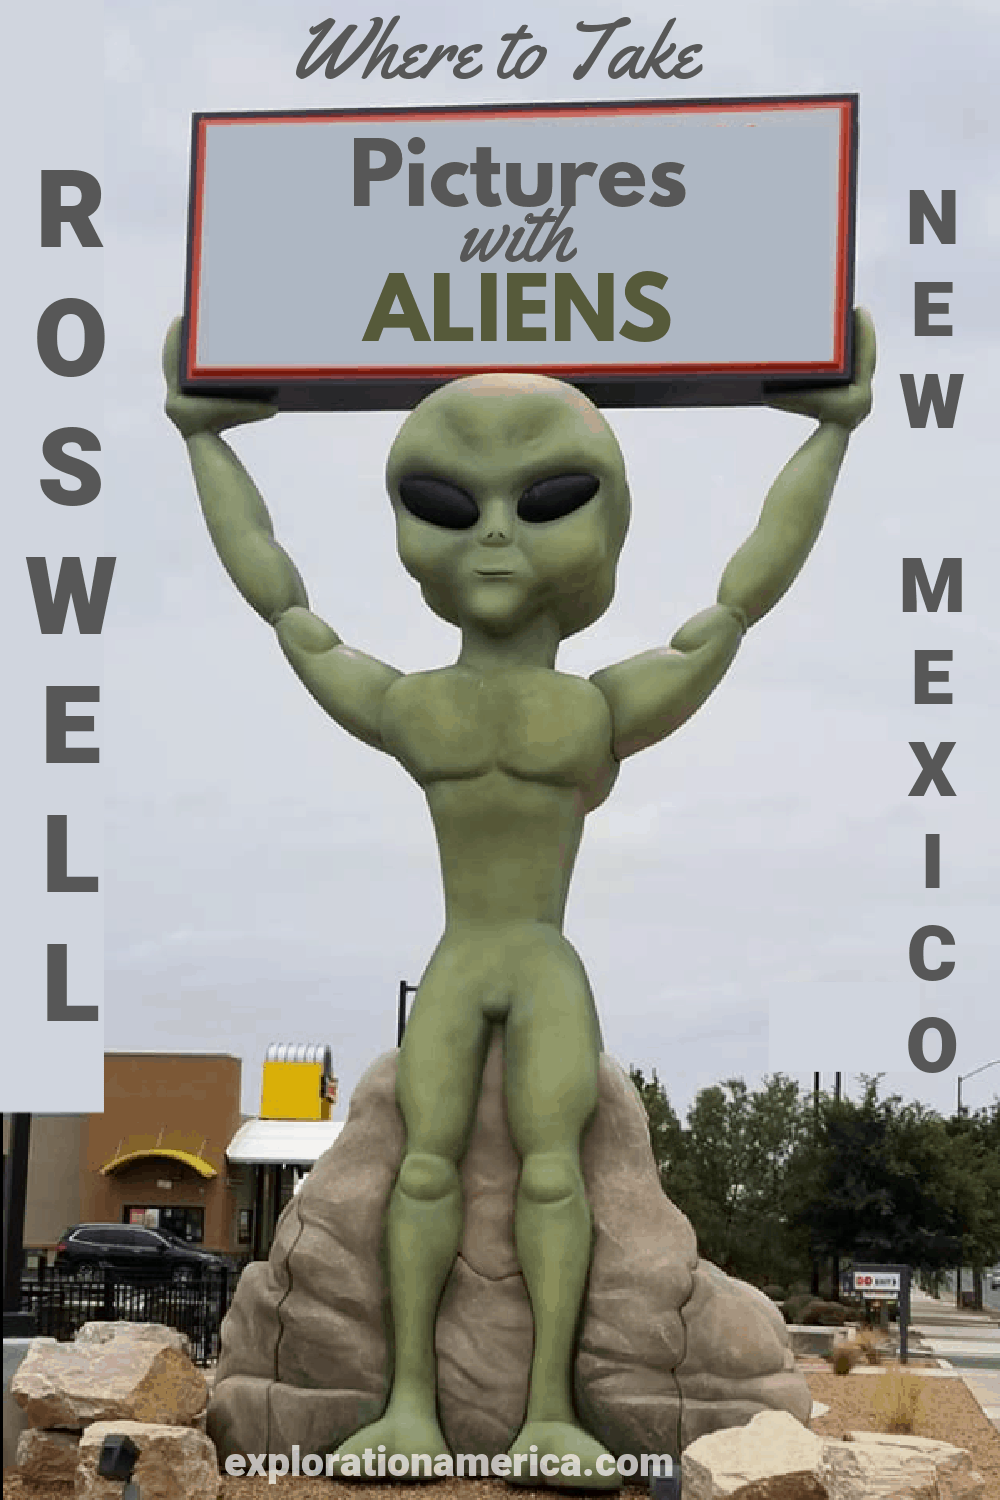 alien sign in Roswell New Mexico